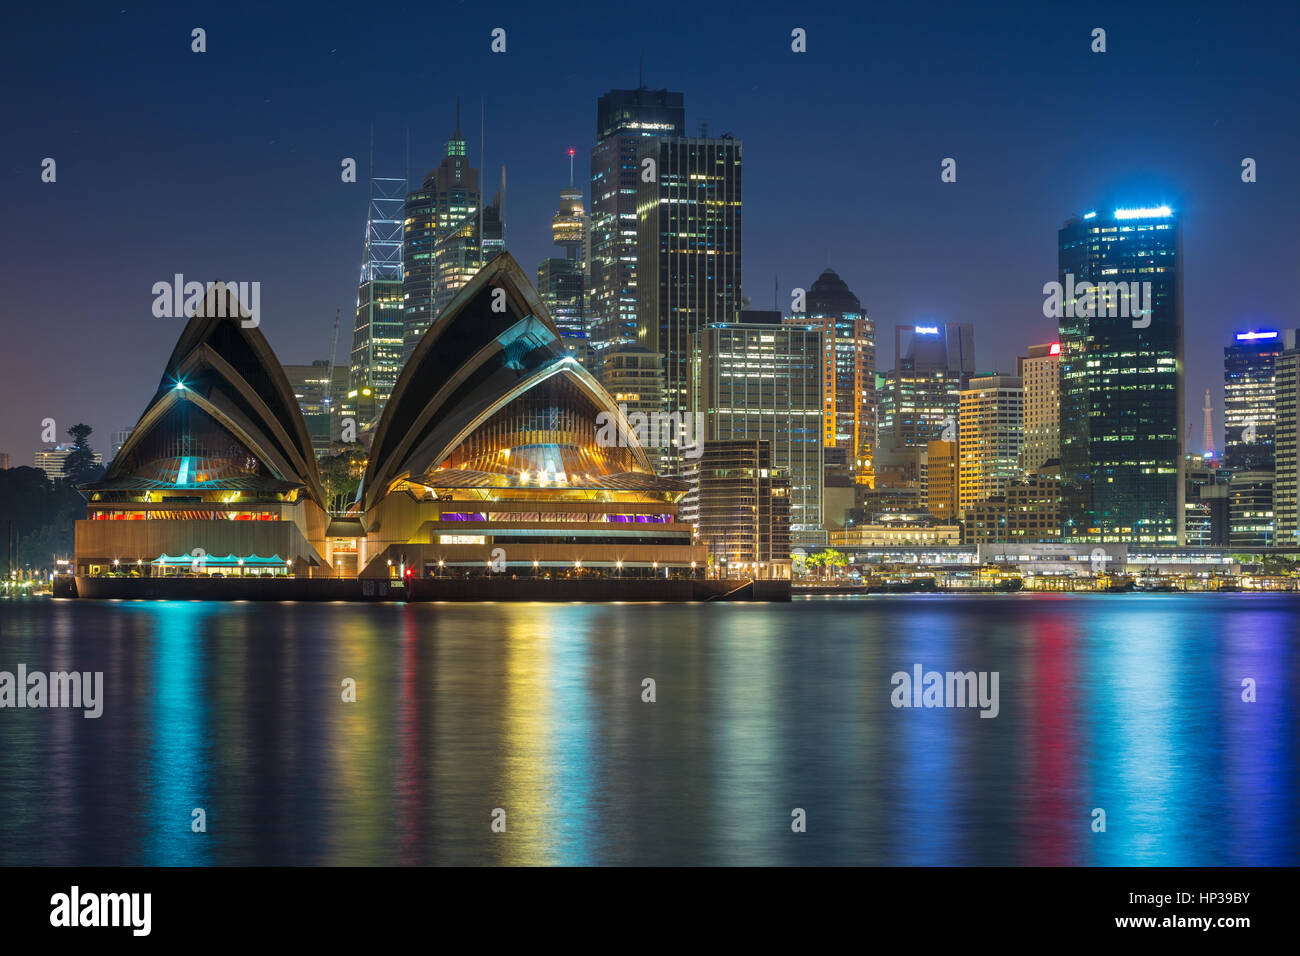 Sydney. Cityscape image of Sydney, Australia with Opera House and Sydney skyline during twilight blue hour. - Stock Image